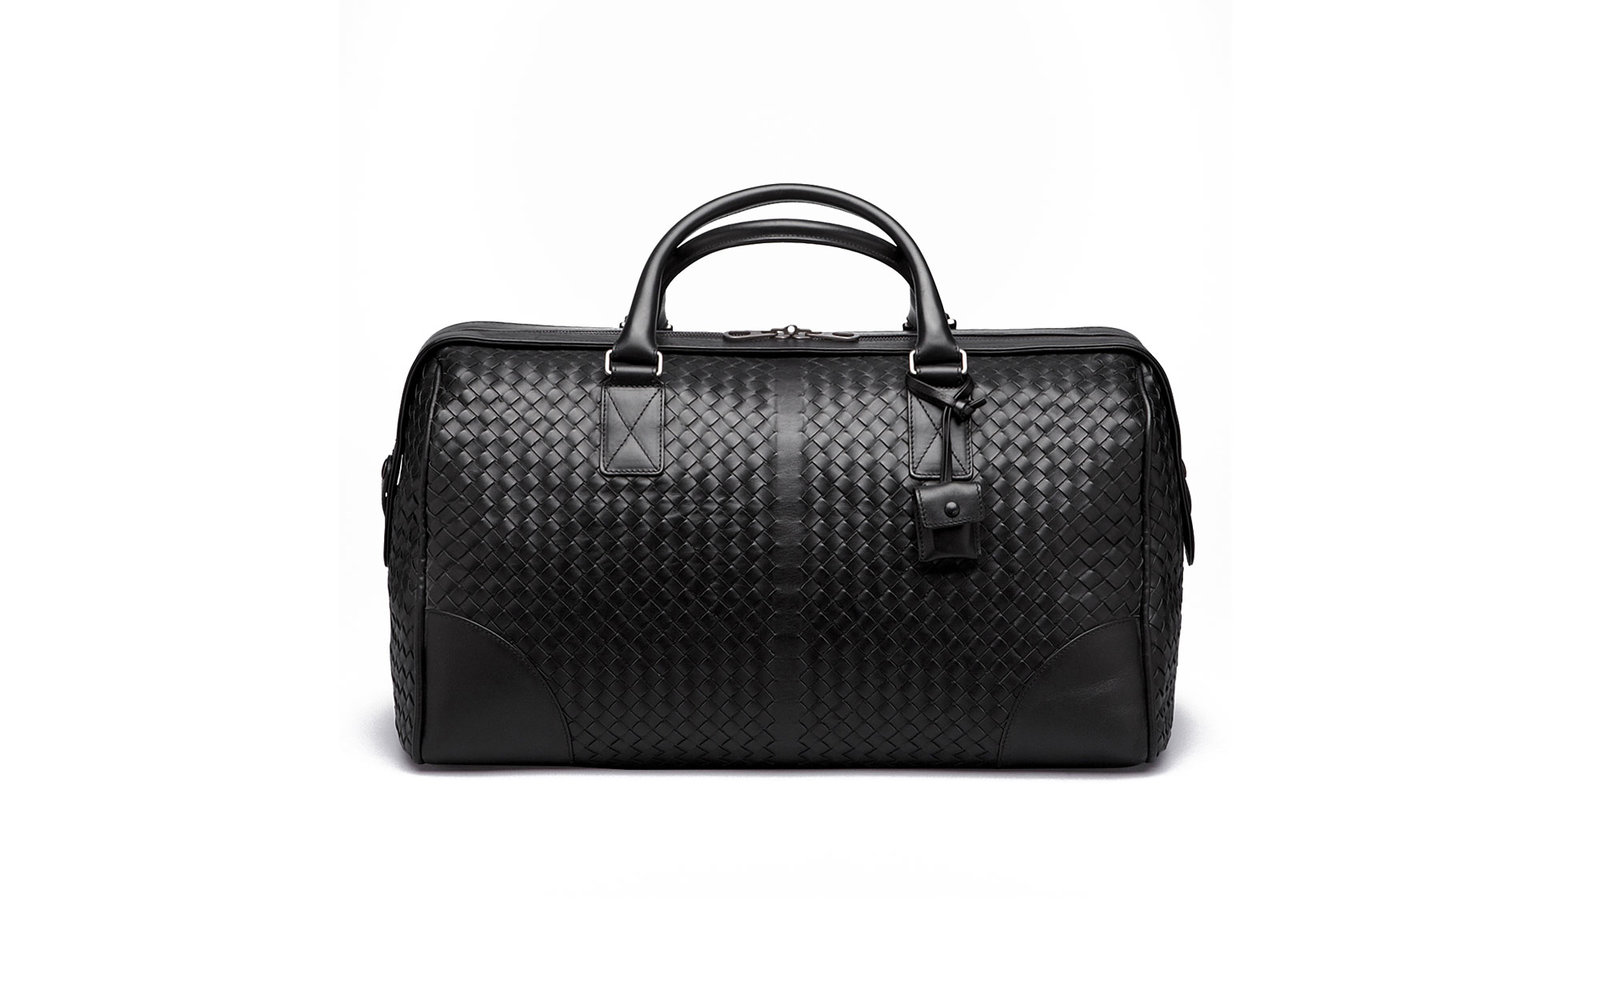 0af5ee1d21f0 Bottega Veneta Medium Duffel Bag